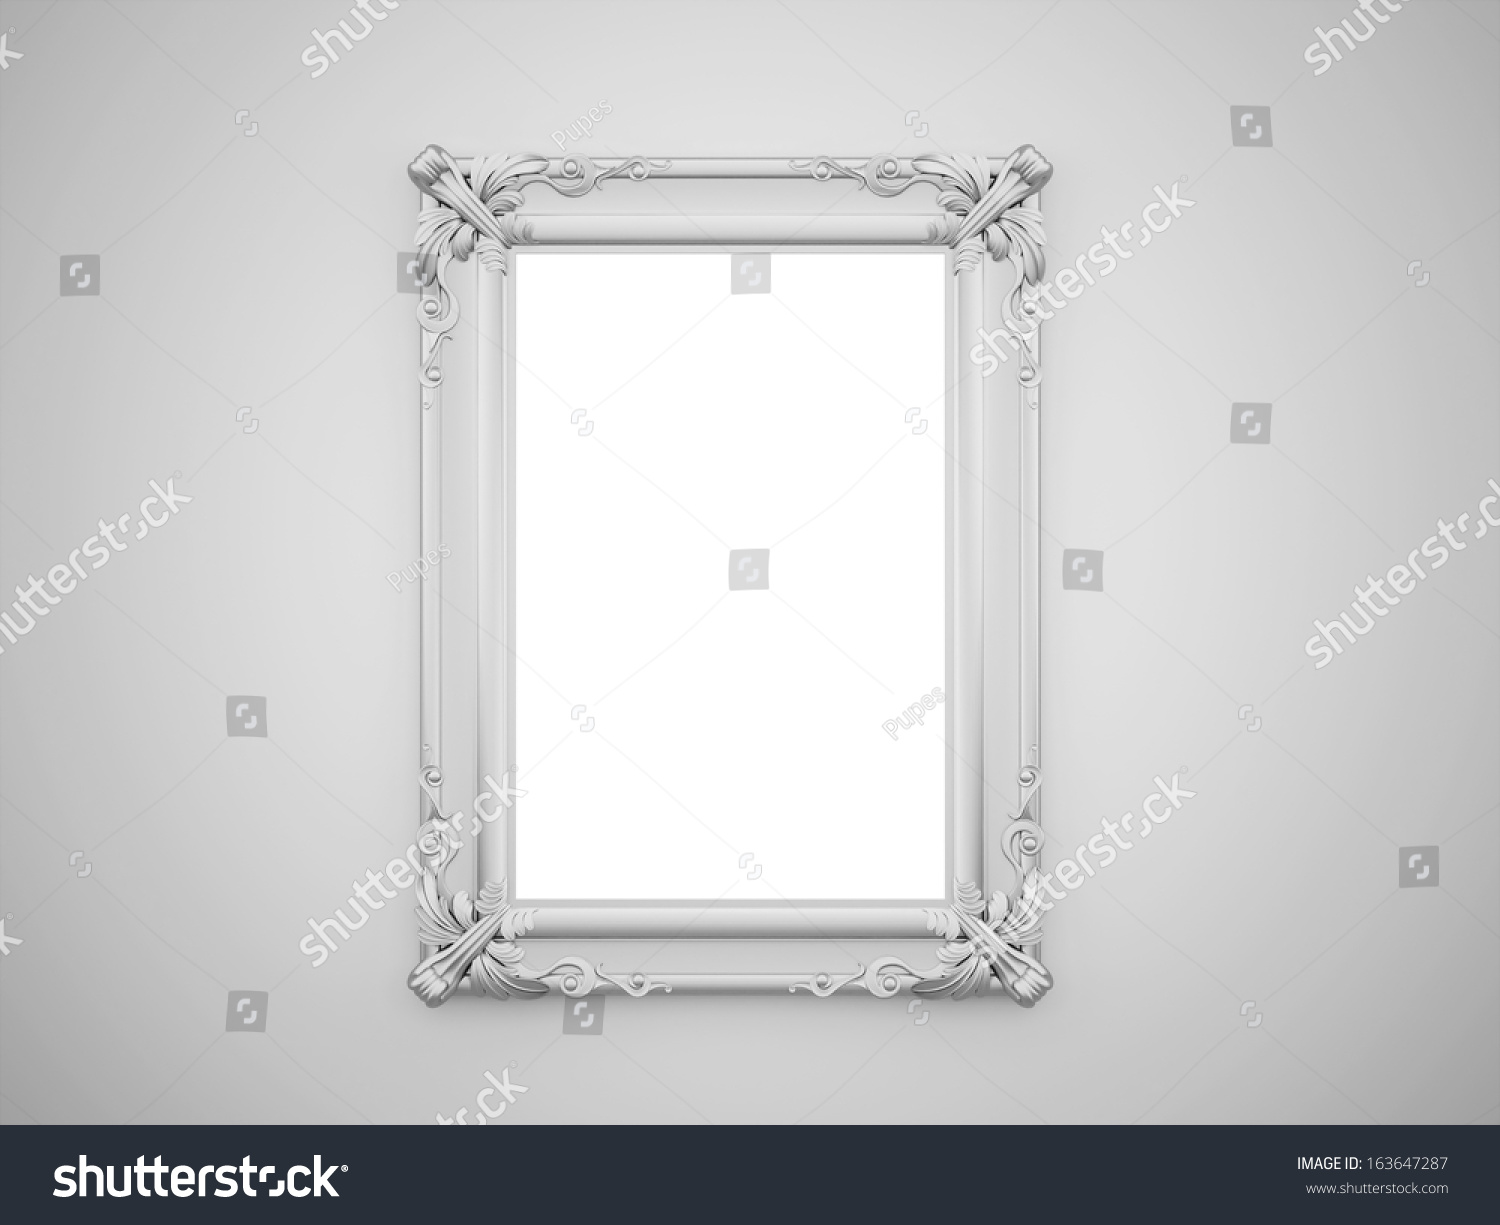 Vintage Mirror With Silver Frame On The Wall Rendered